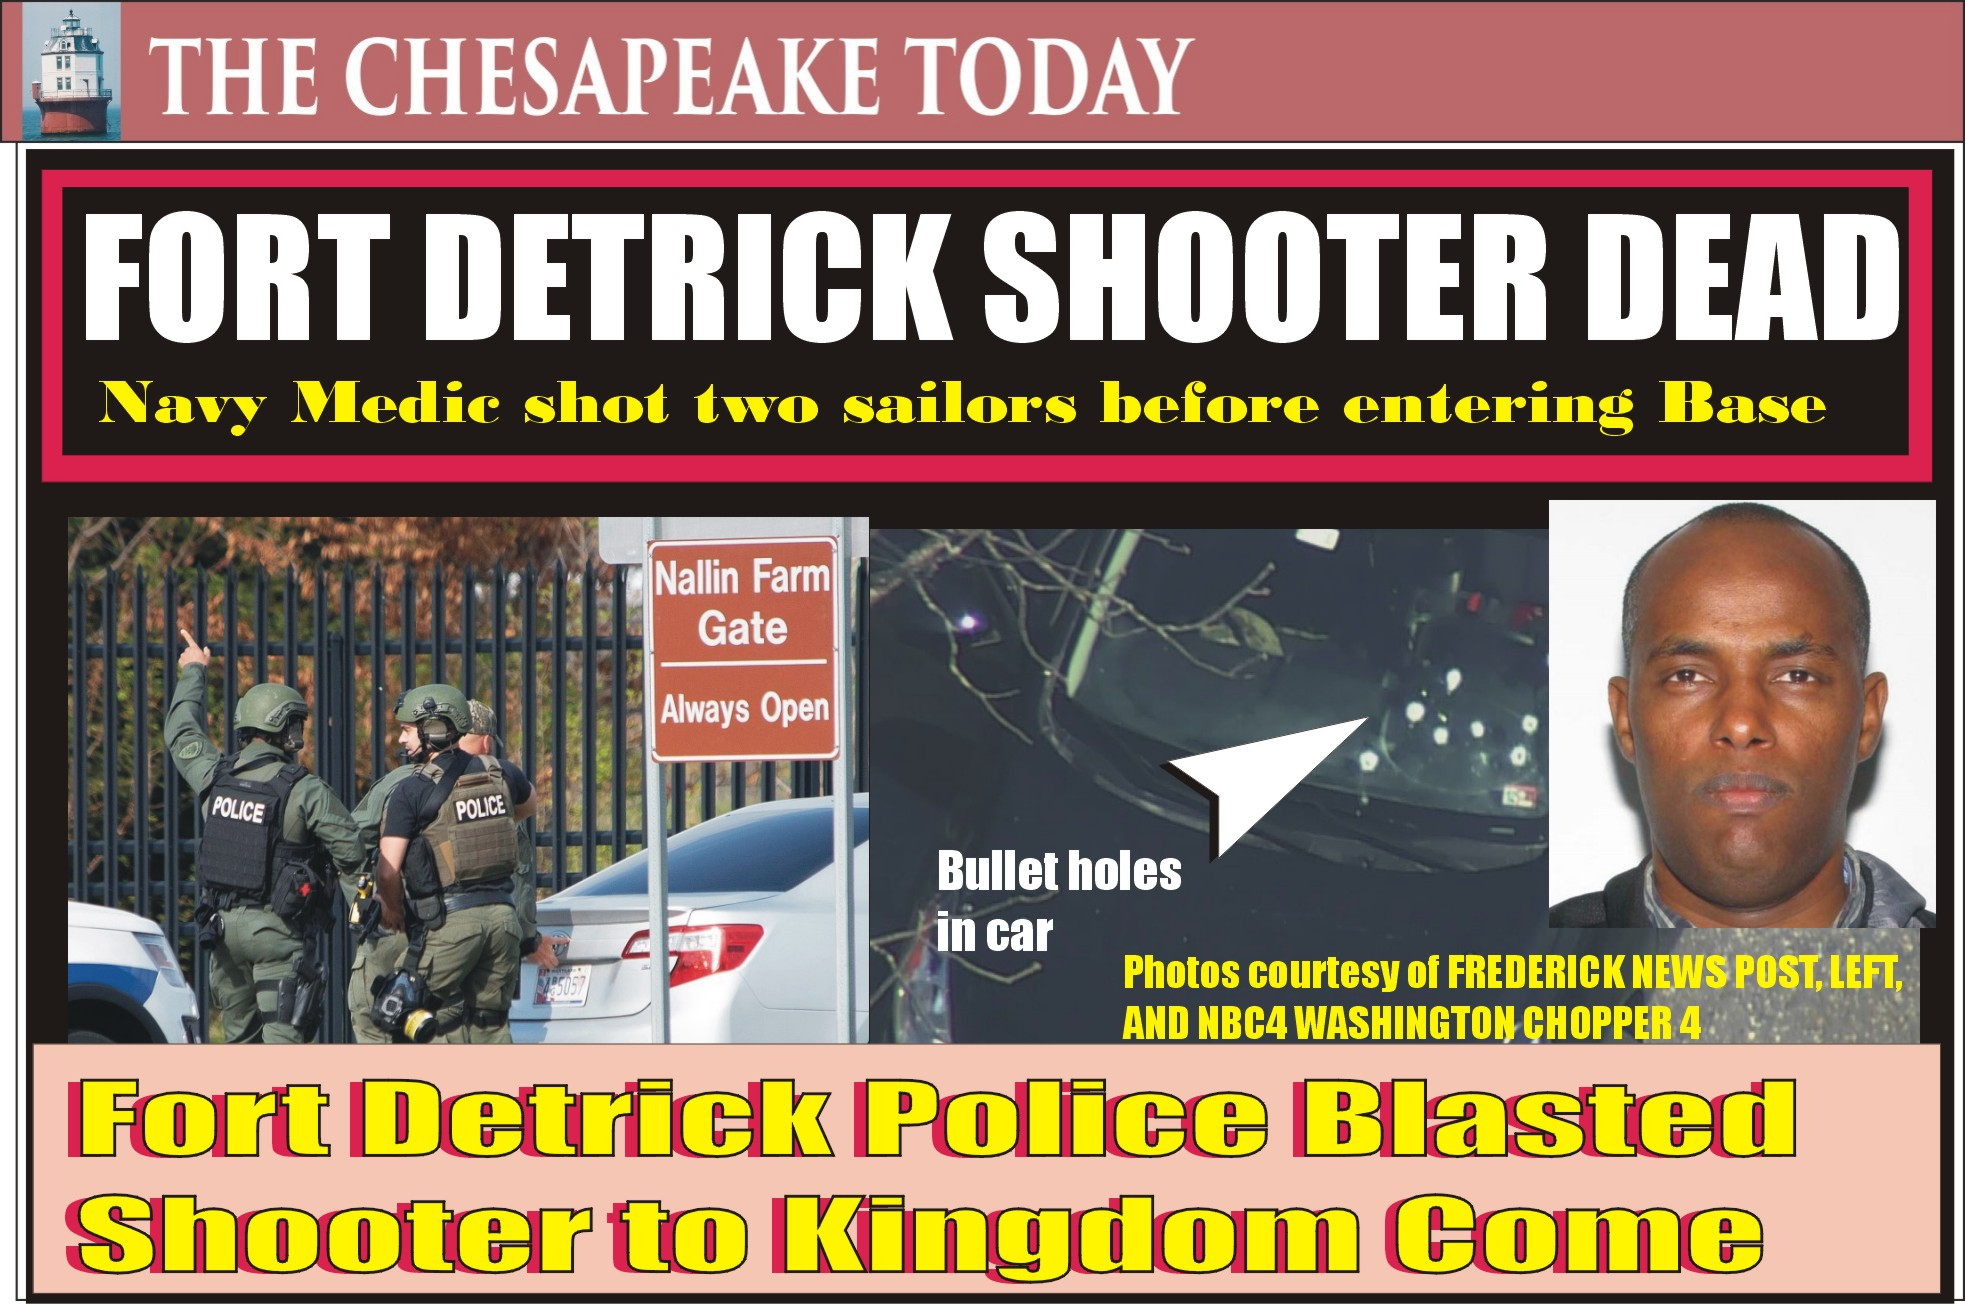 Fantahun Girma Woldesenbet shot two sailors; killed in a shootout with police at Fort Detrick